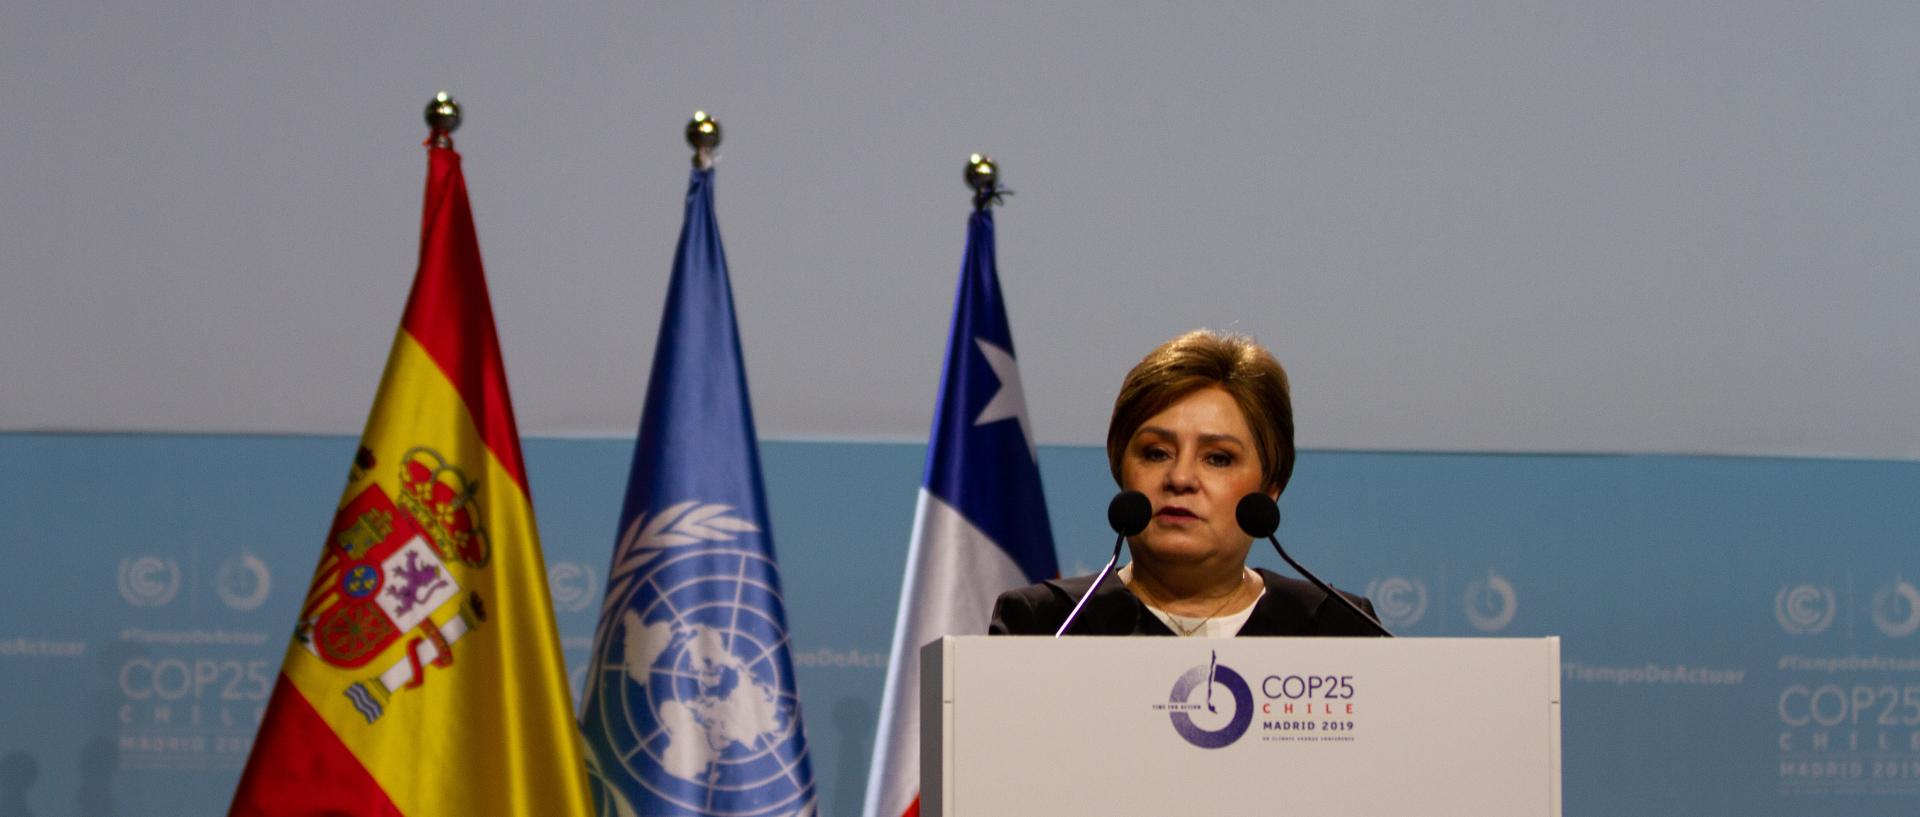 Patricia Espinosa at opening of COP25 high level segment